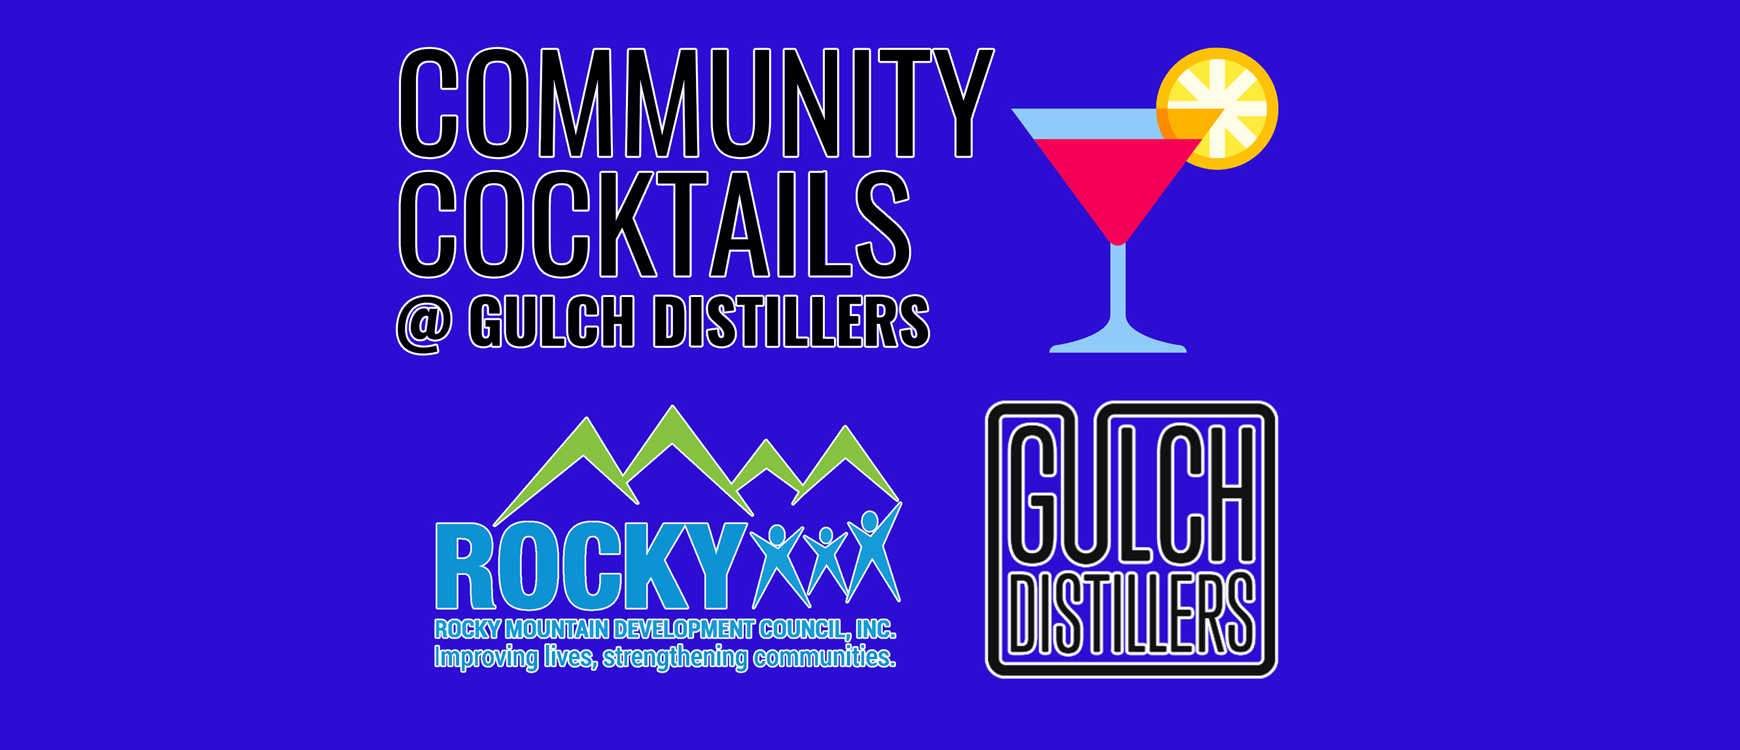 Community Cocktails at Gulch Distillers